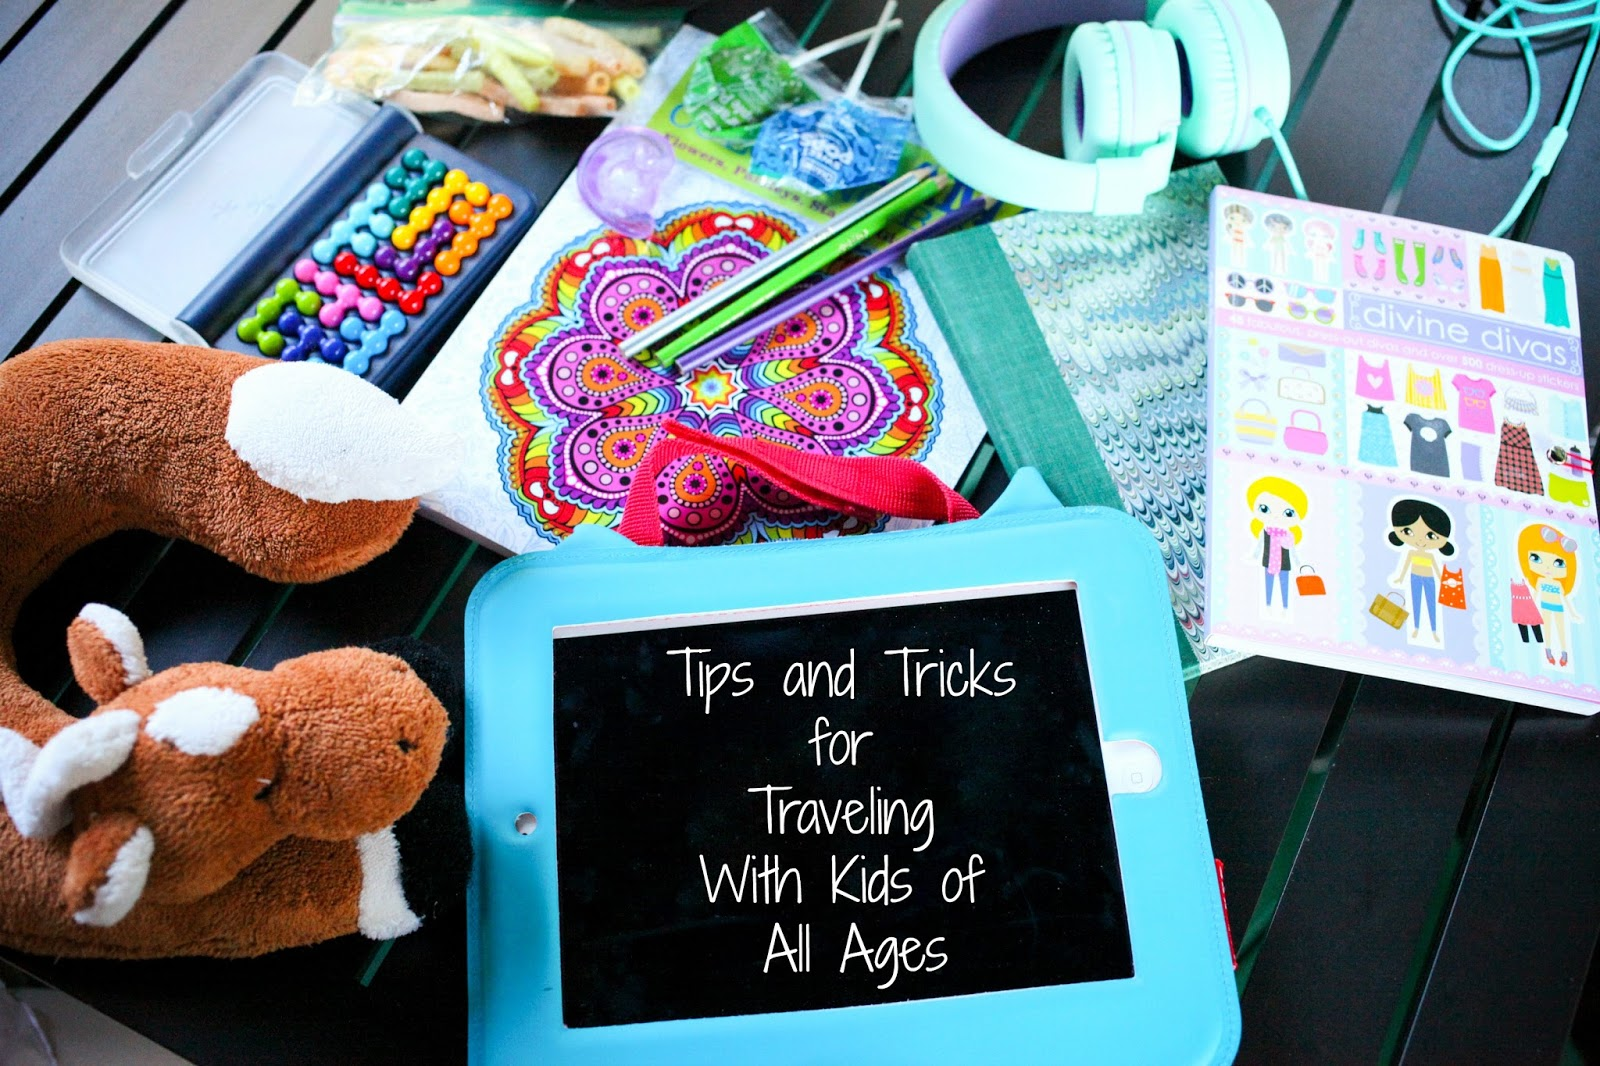 Preparing for traveling with kids, a few items you will need